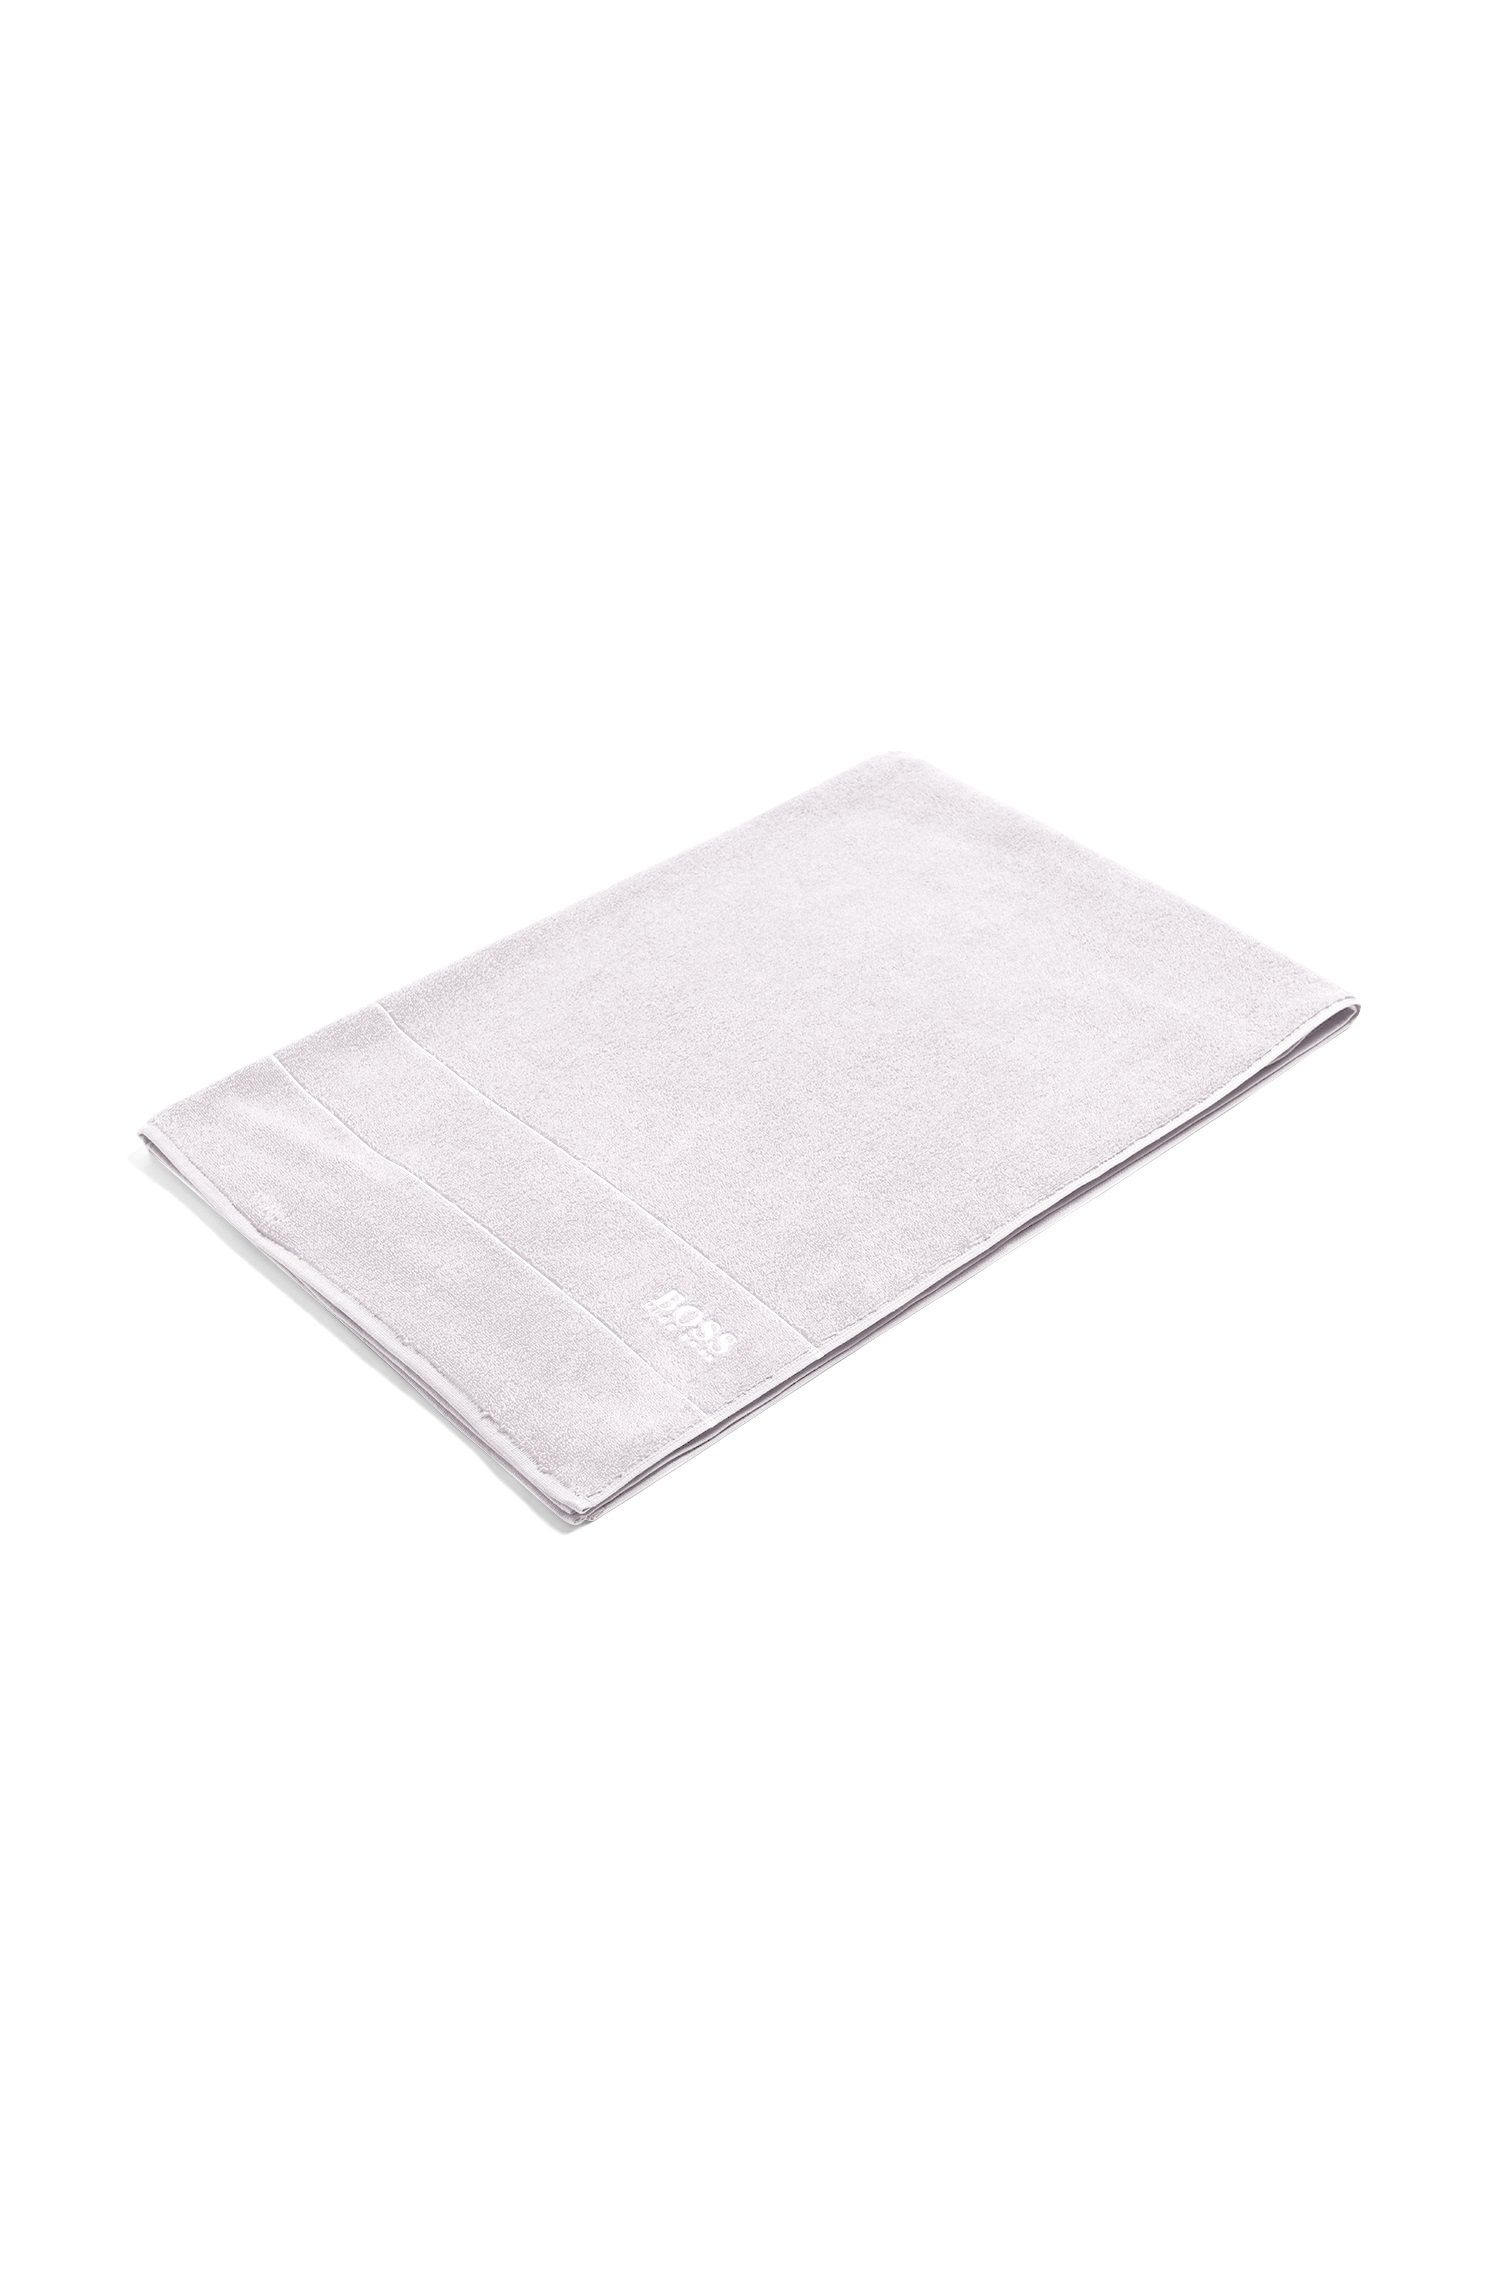 Finest Egyptian cotton bath sheet with logo border